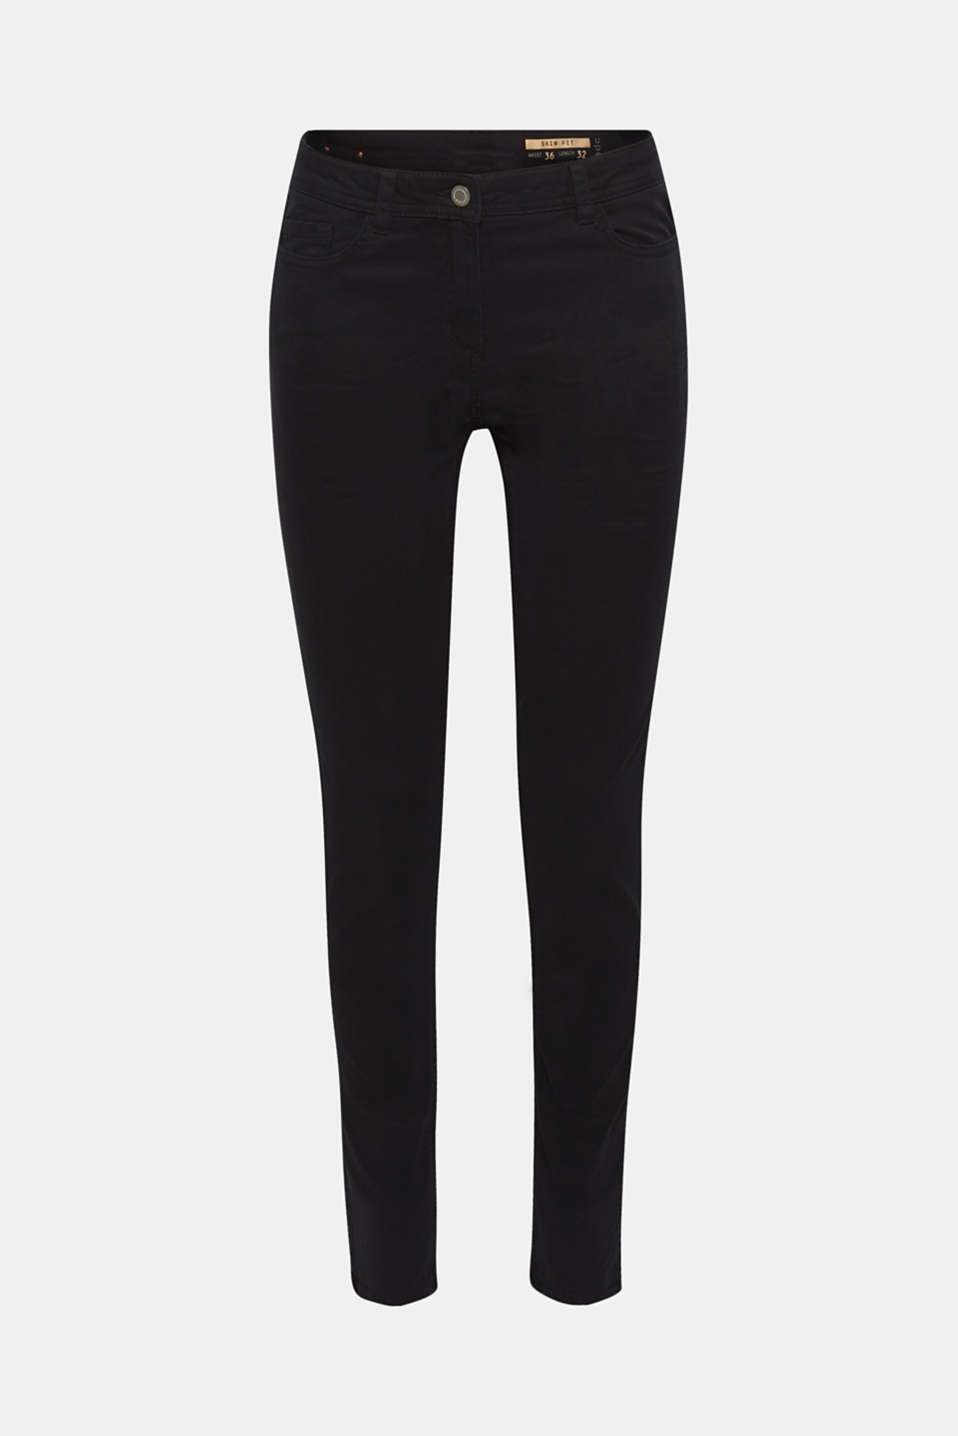 edc - Super stretch trousers